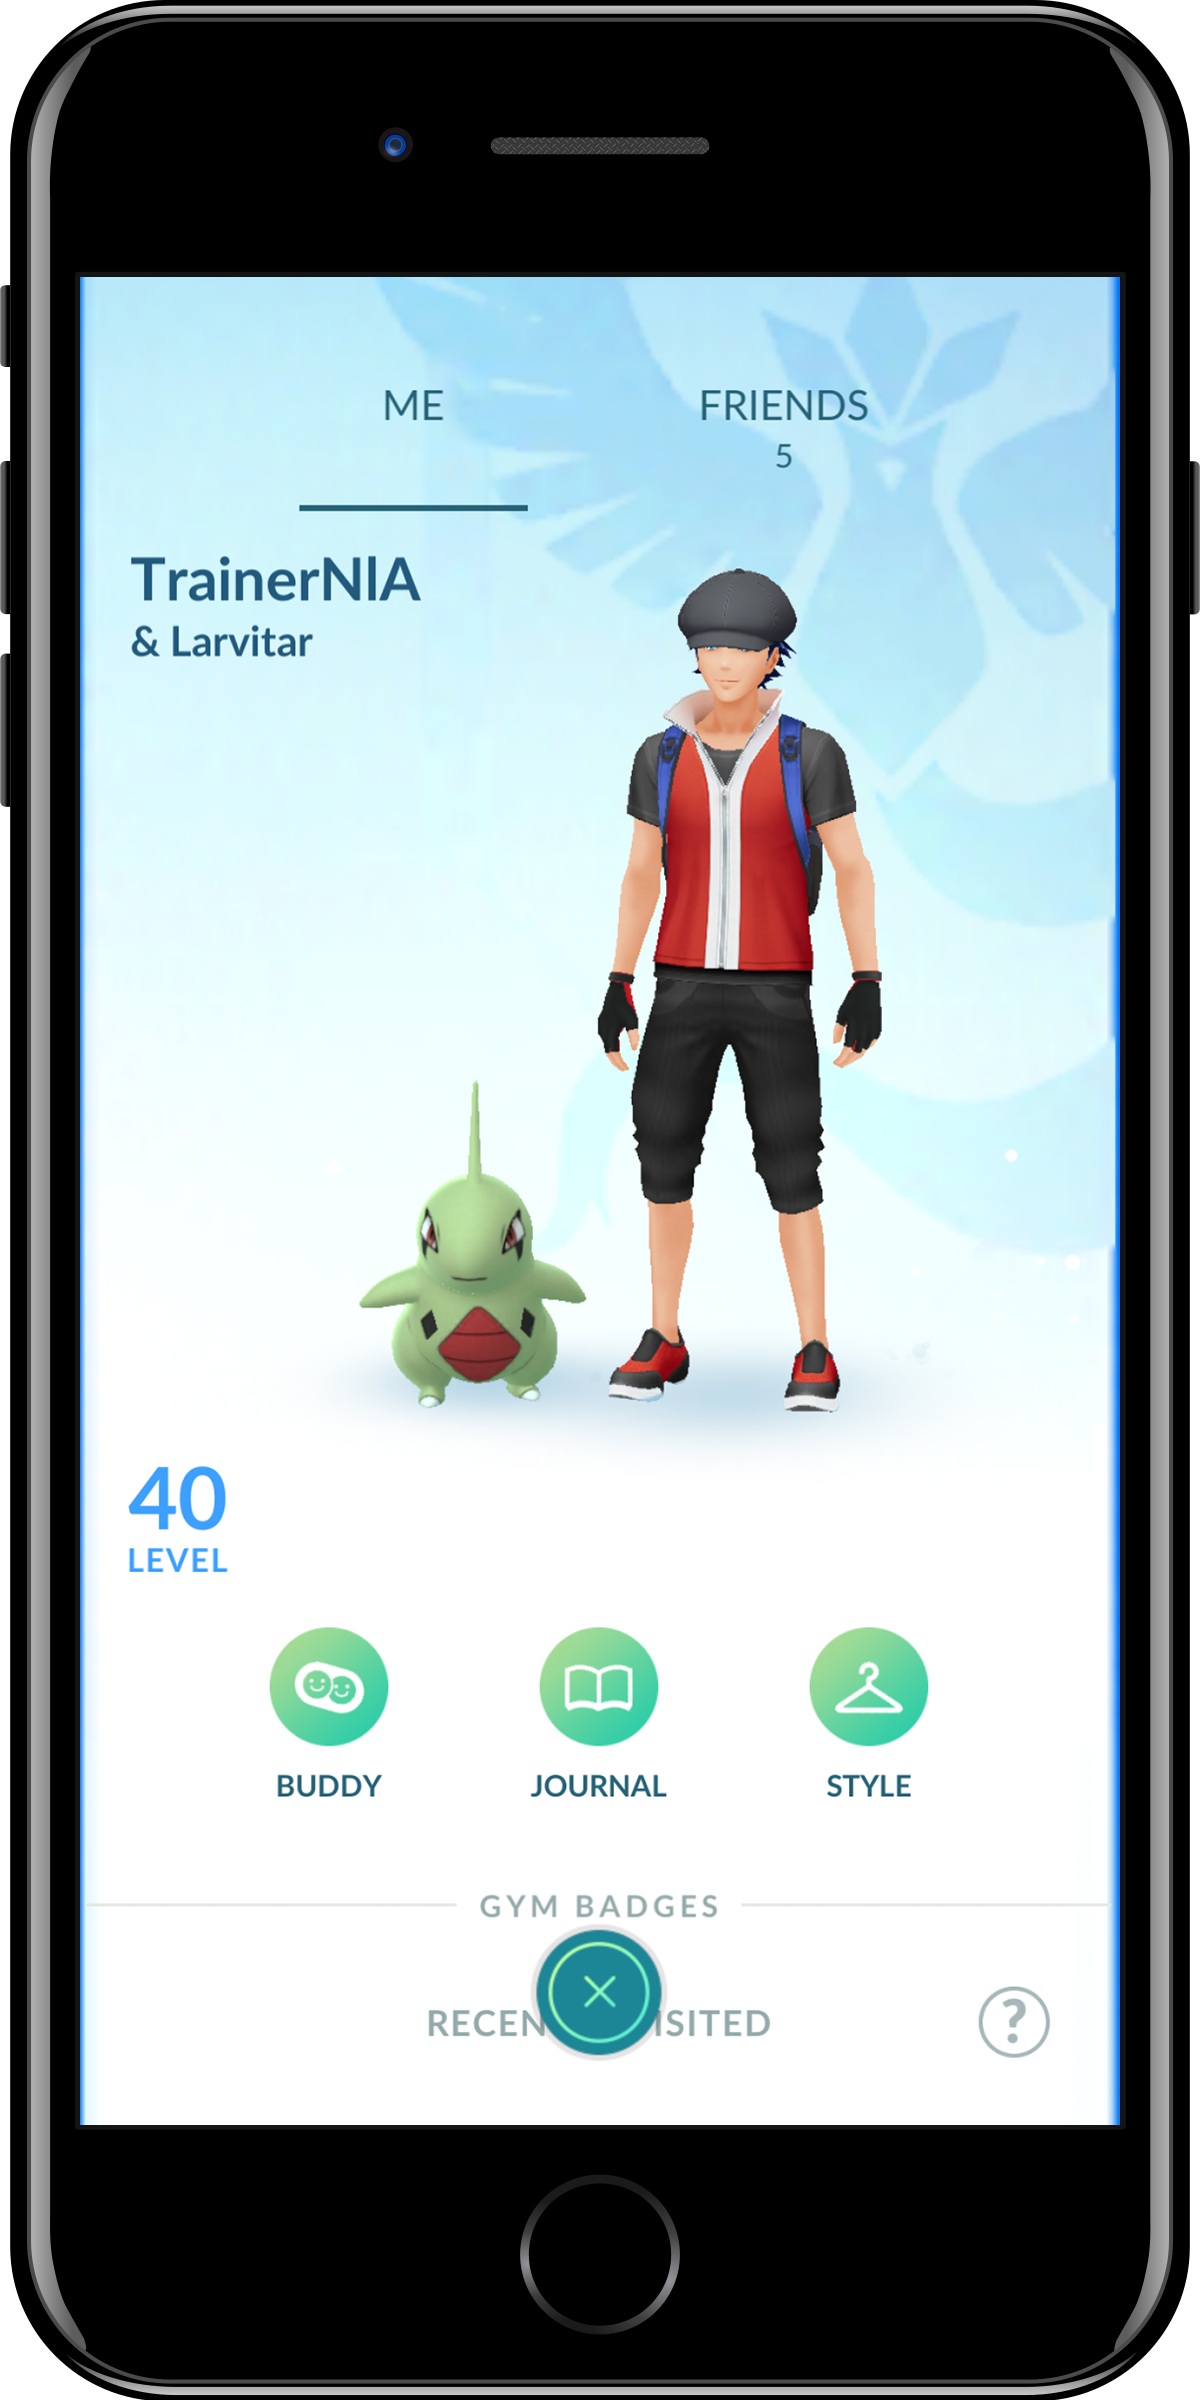 Pokémon Go trading and friends lists are coming soon - The Verge